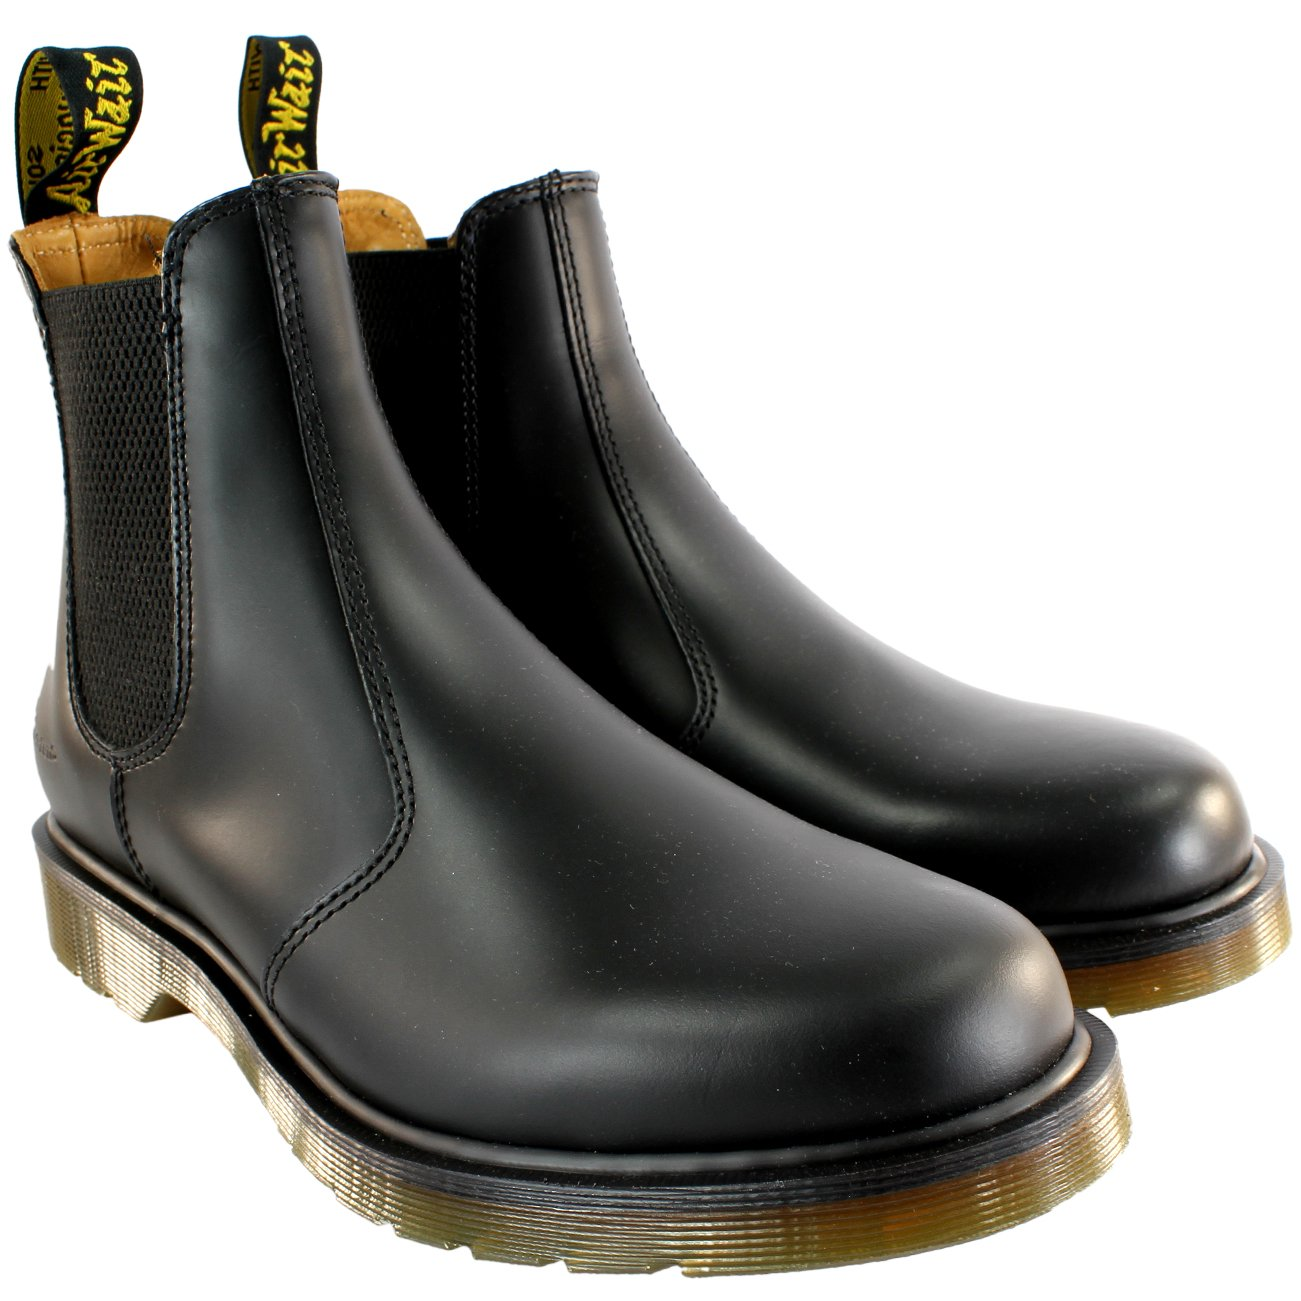 7ce97c4fbe2 Dr. Martens 2976 Chelsea Boot,Black Smooth